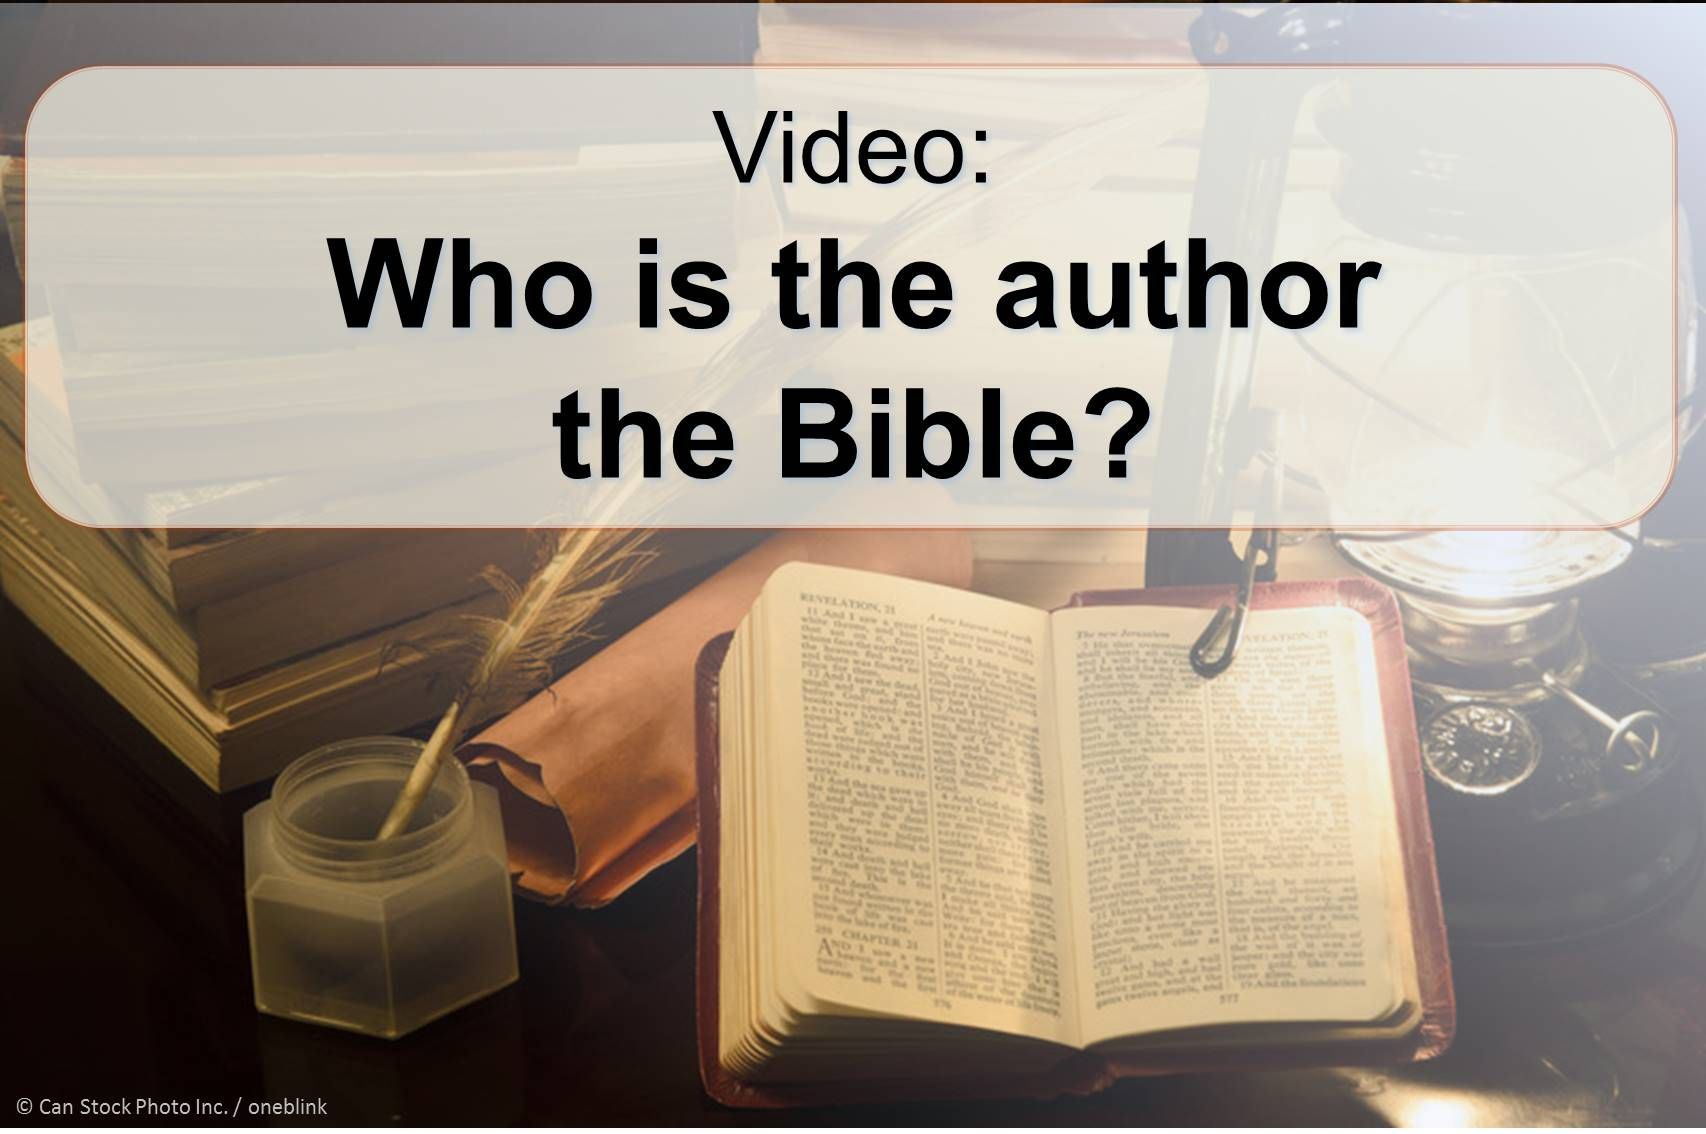 About Forty Different Men Wrote The Text Of The Bible Yet It Is Called The Word Of God 1 Thessalonians 2 13 How Could God Give H Jw Org Bible Word Of God